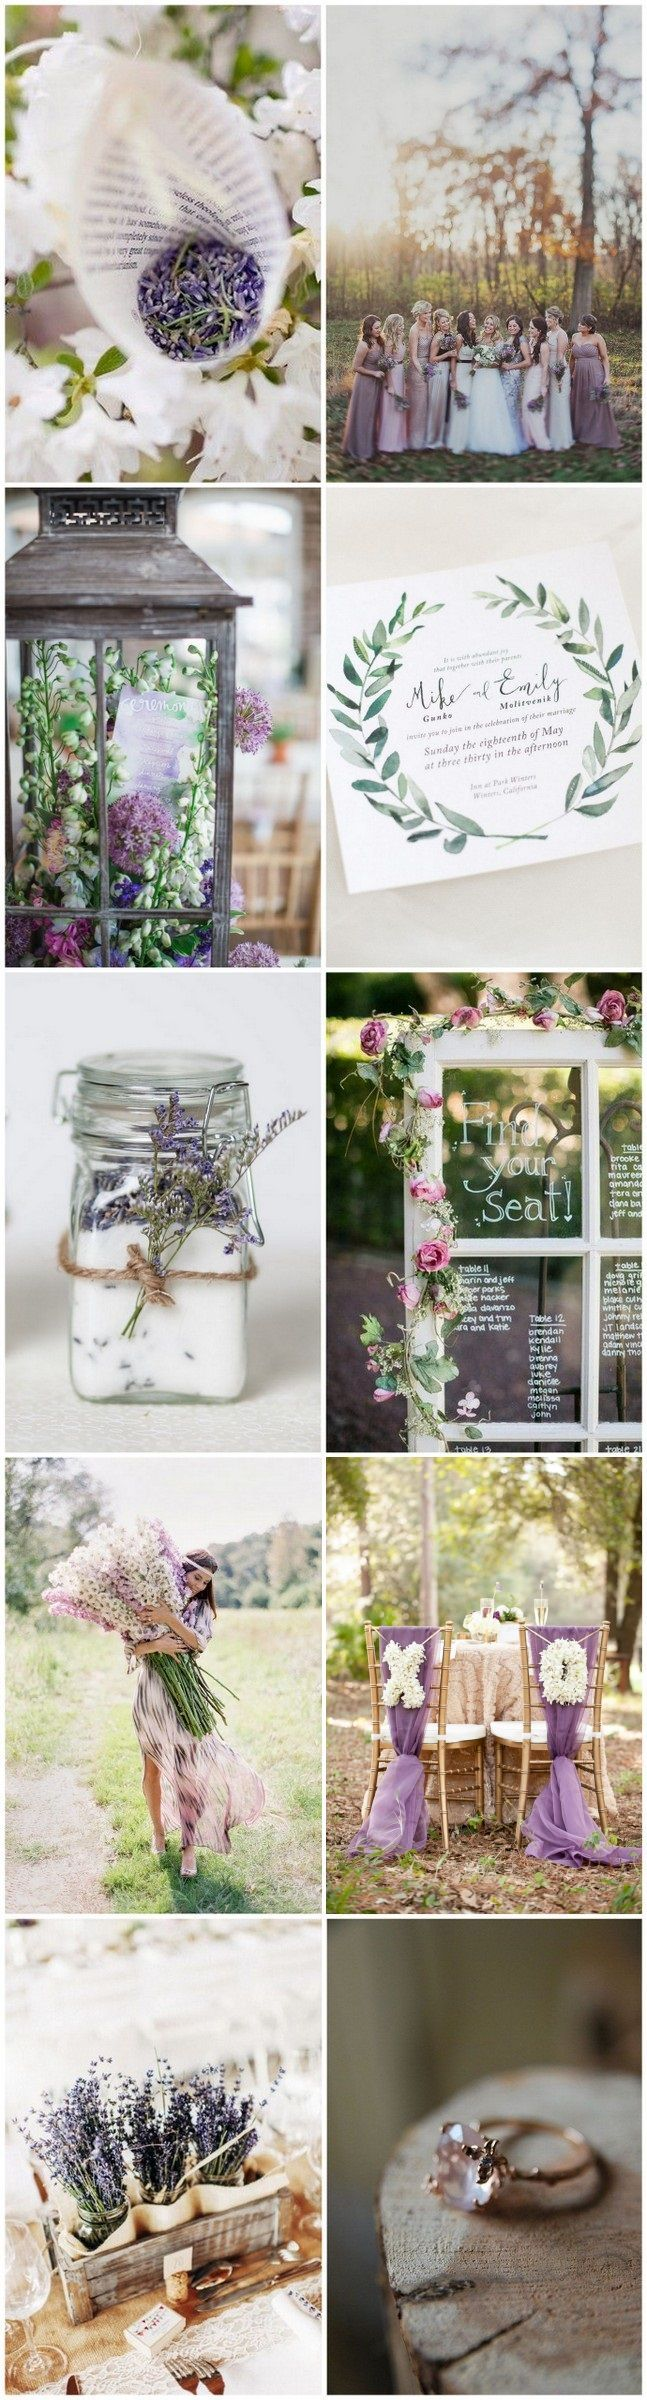 Today we're talking inspiration for the dreamiest garden wedding decor and some great ideas for incorporating lavender into your Big Day.